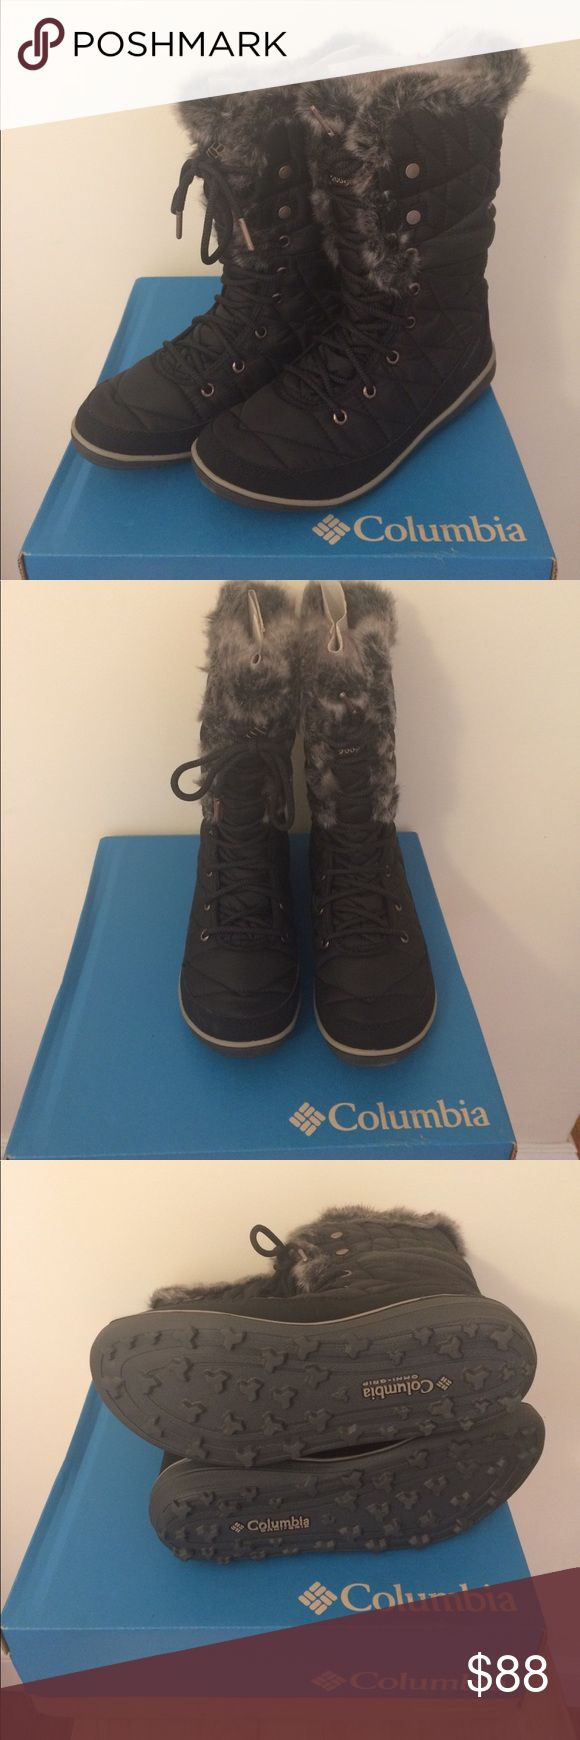 "Columbia Omni-Heat Faux Fur Mid-Calf Winter Boots Brand new black Heavenly™ Omni-Heat™ Columbia winter boots! Website description: ""Waterproof breathable seam-sealed membrane bootie construction keeps feet dry. 200g insulation to keep feet warm. Omni-Grip™ non-marking rubber outsole for traction on snowy and slippery surfaces. Waterproof woven synthetic textile upper fights off water penetration. Textile webbing and faux fur collar and trim. Metal rivets and aglets for durable wear…"